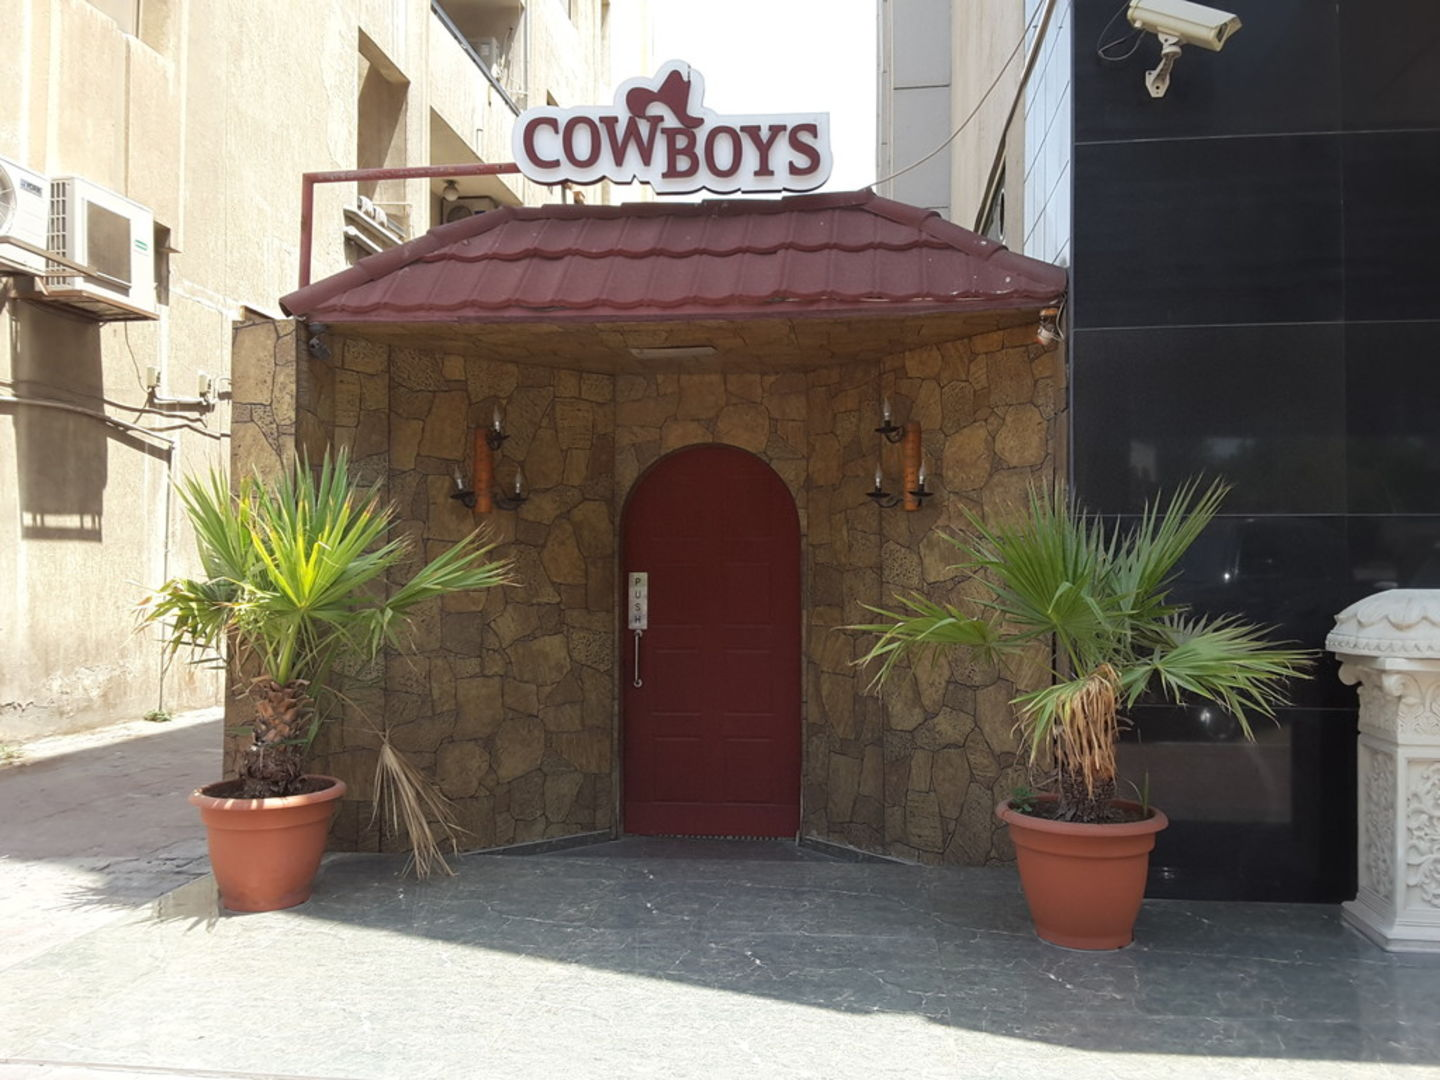 HiDubai-business-cowboys-food-beverage-restaurants-bars-al-karama-dubai-2